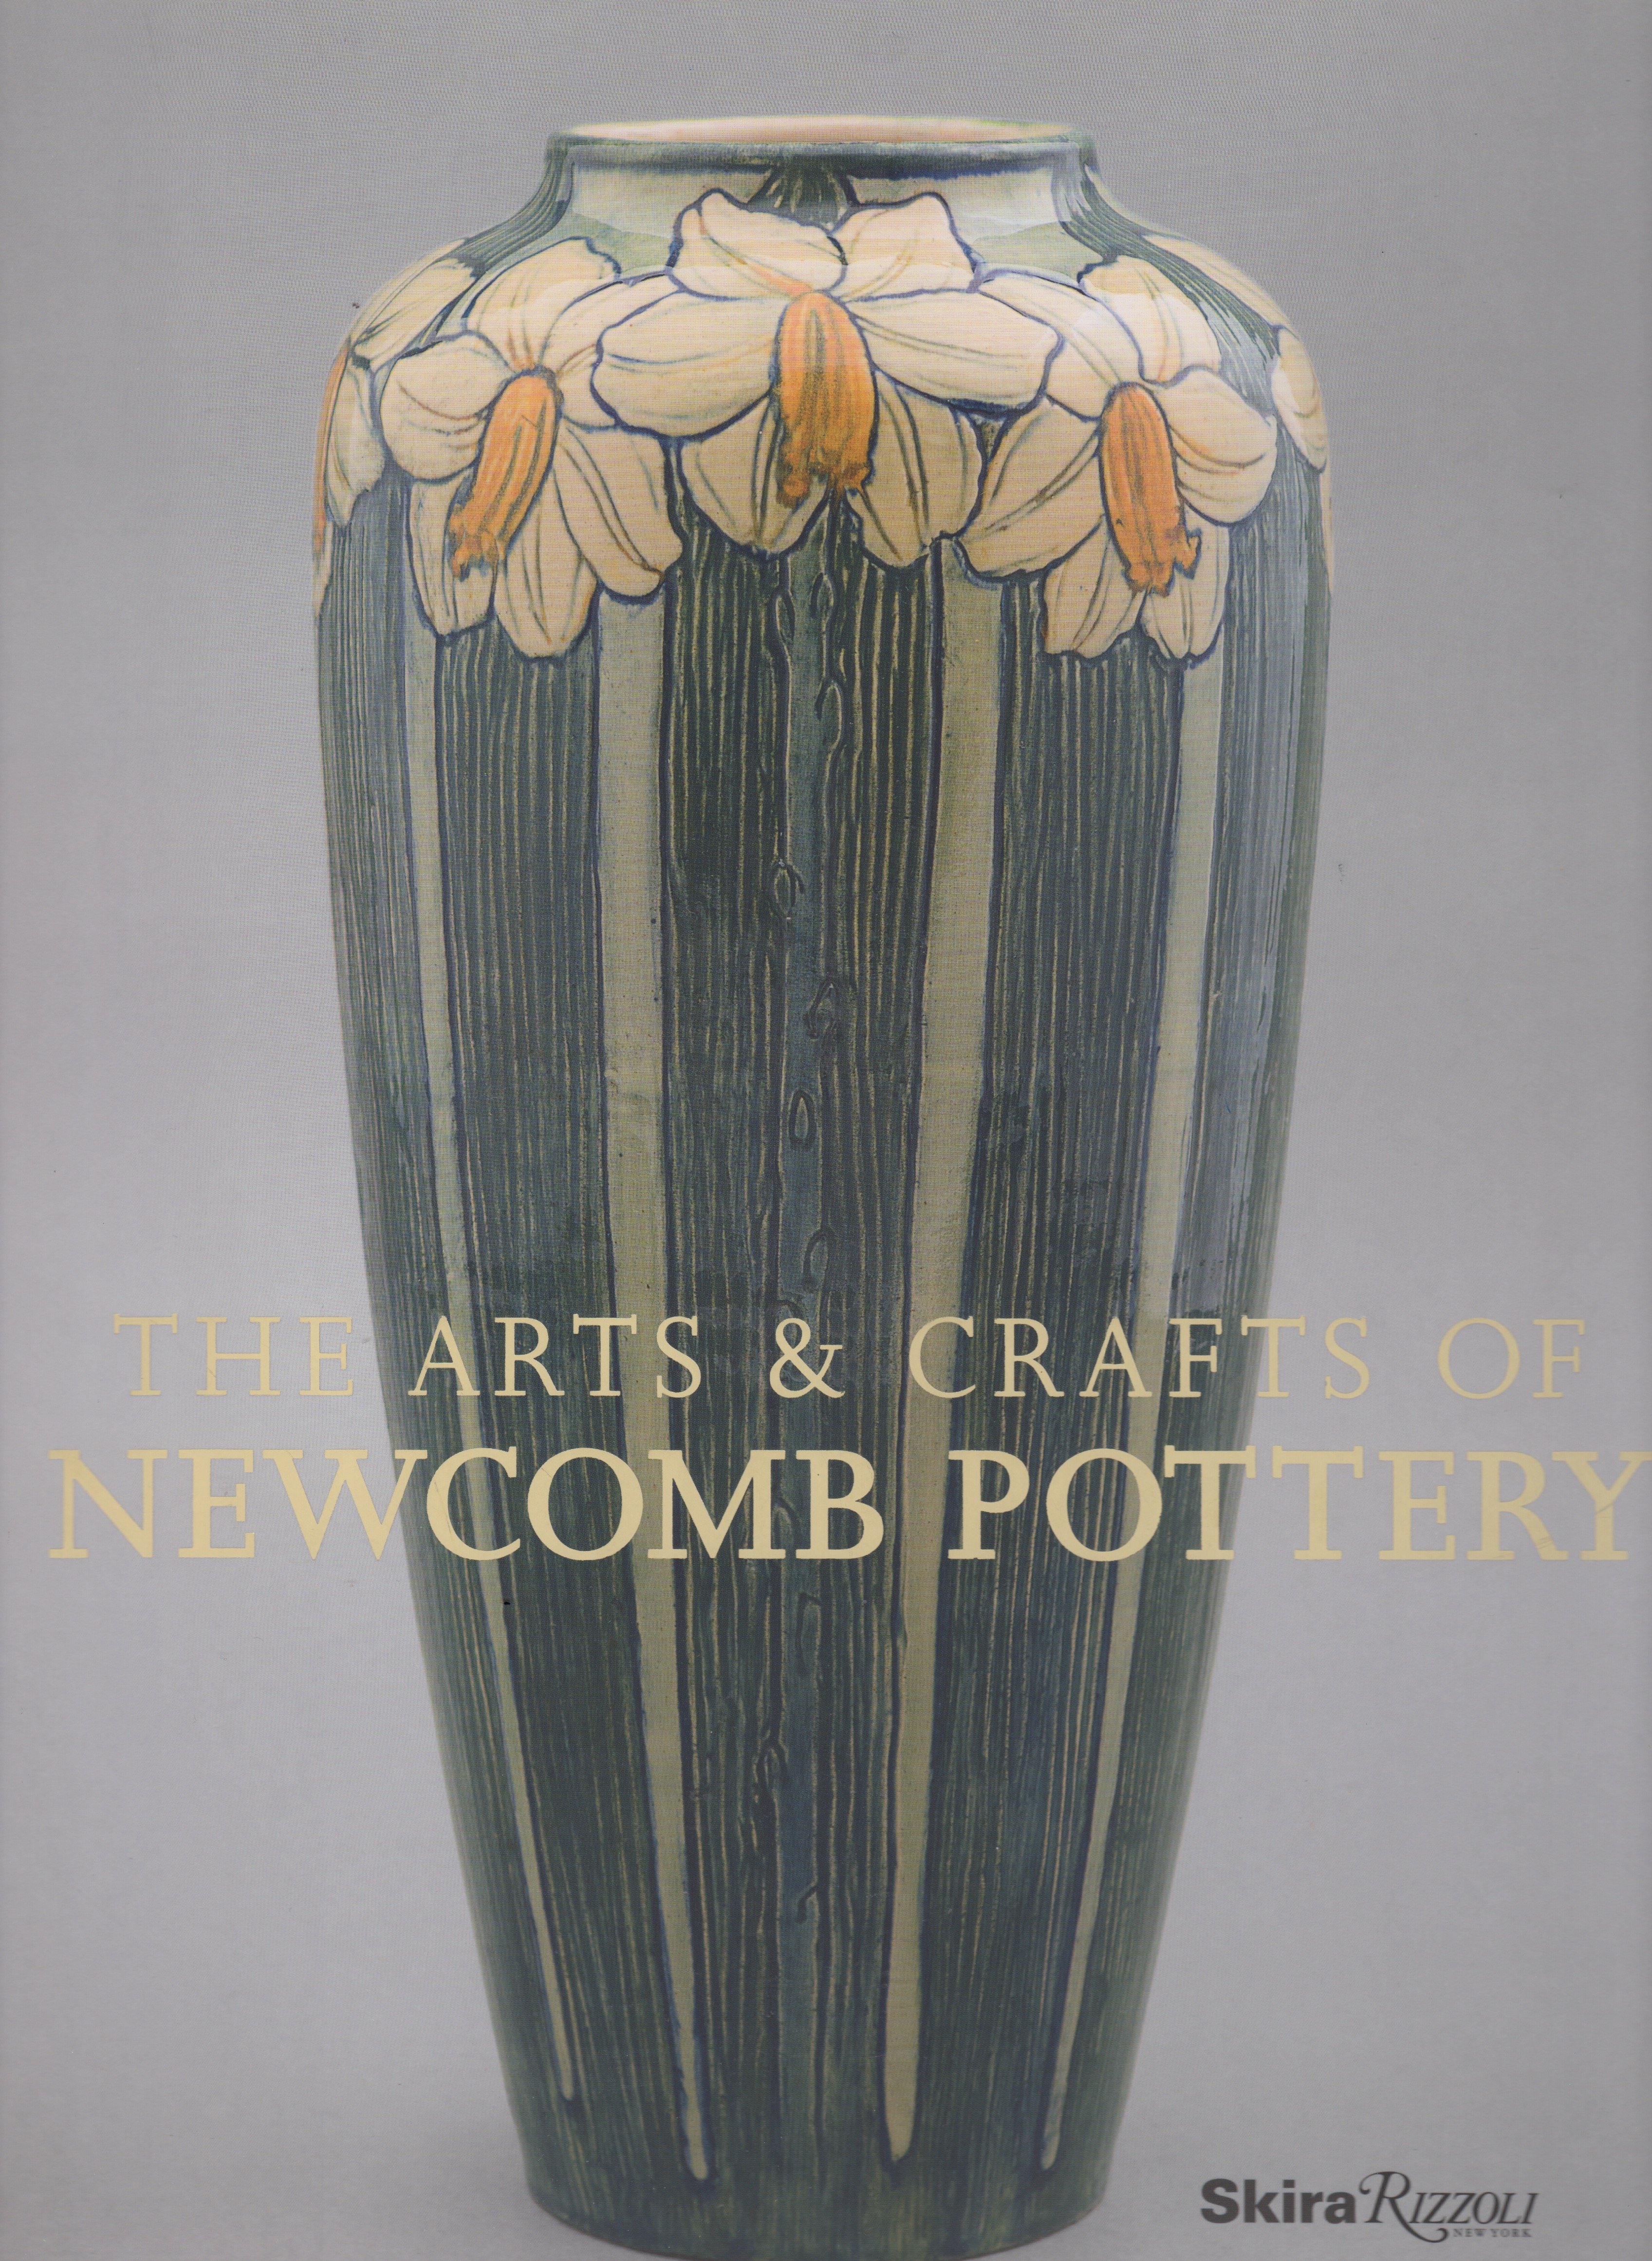 The arts and crafts of newcomb pottery hardcover newcomb art the arts and crafts of newcomb pottery hardcover reviewsmspy